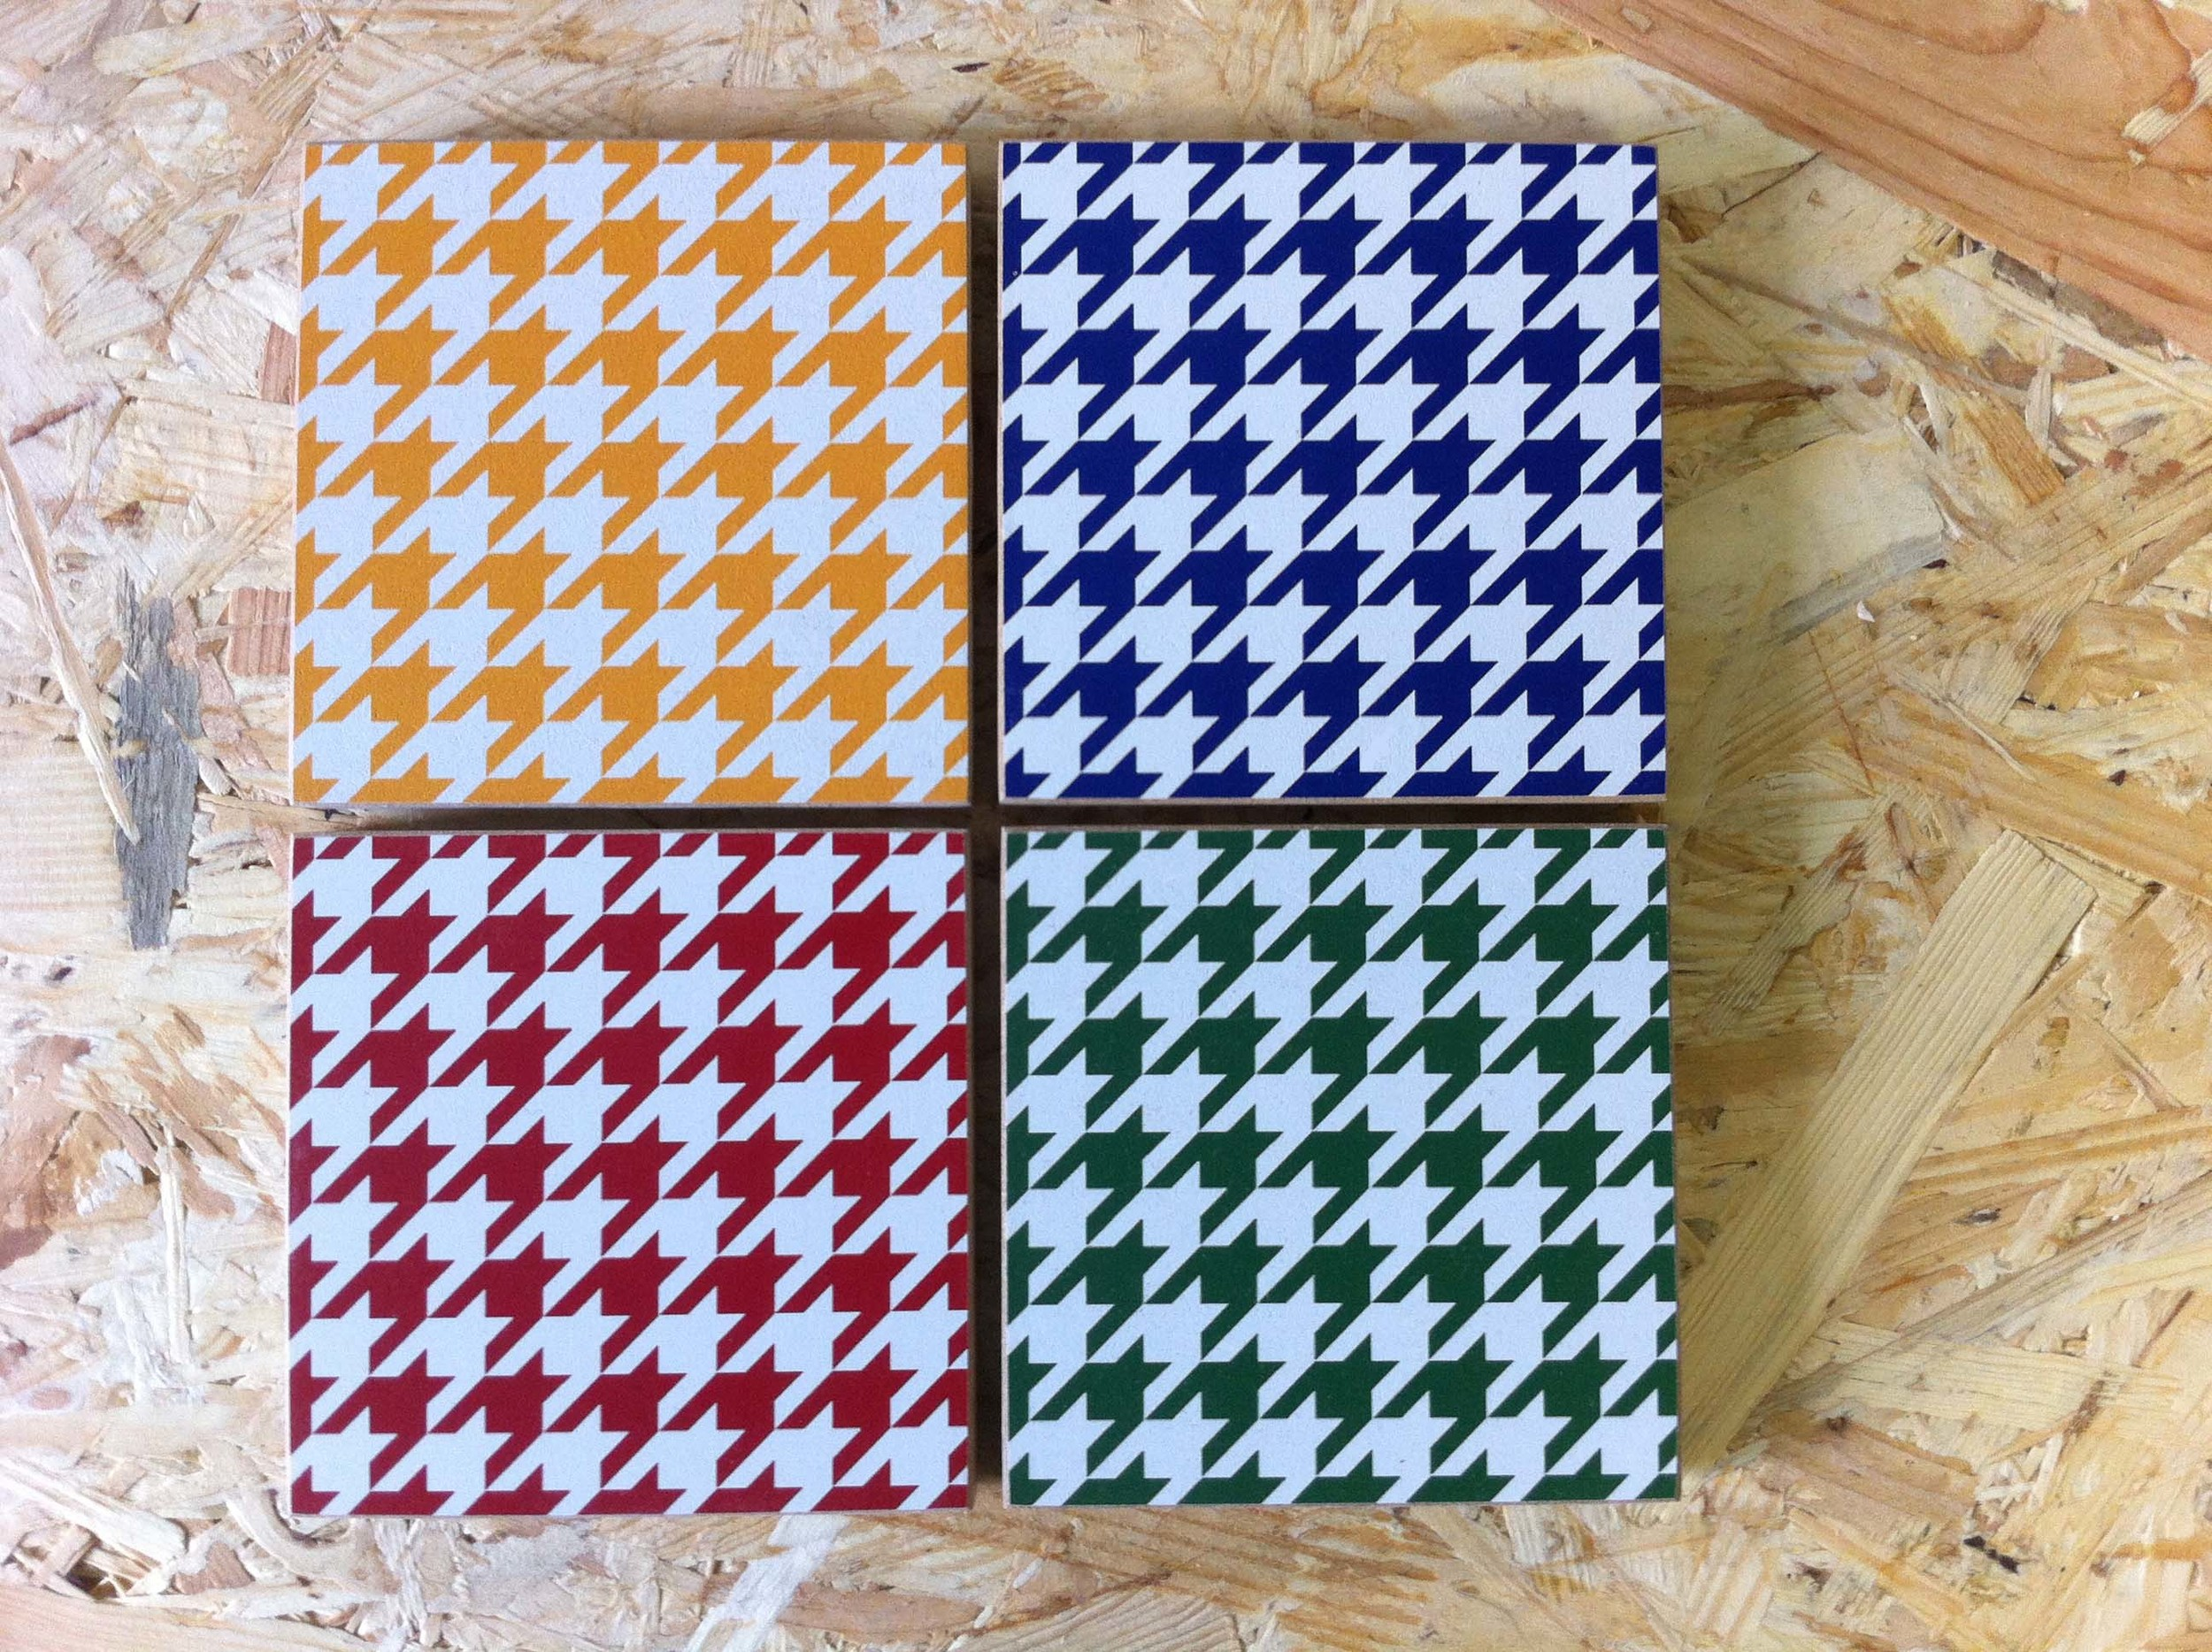 4 poule patterns color ànouveau upcycling écodesign.JPG